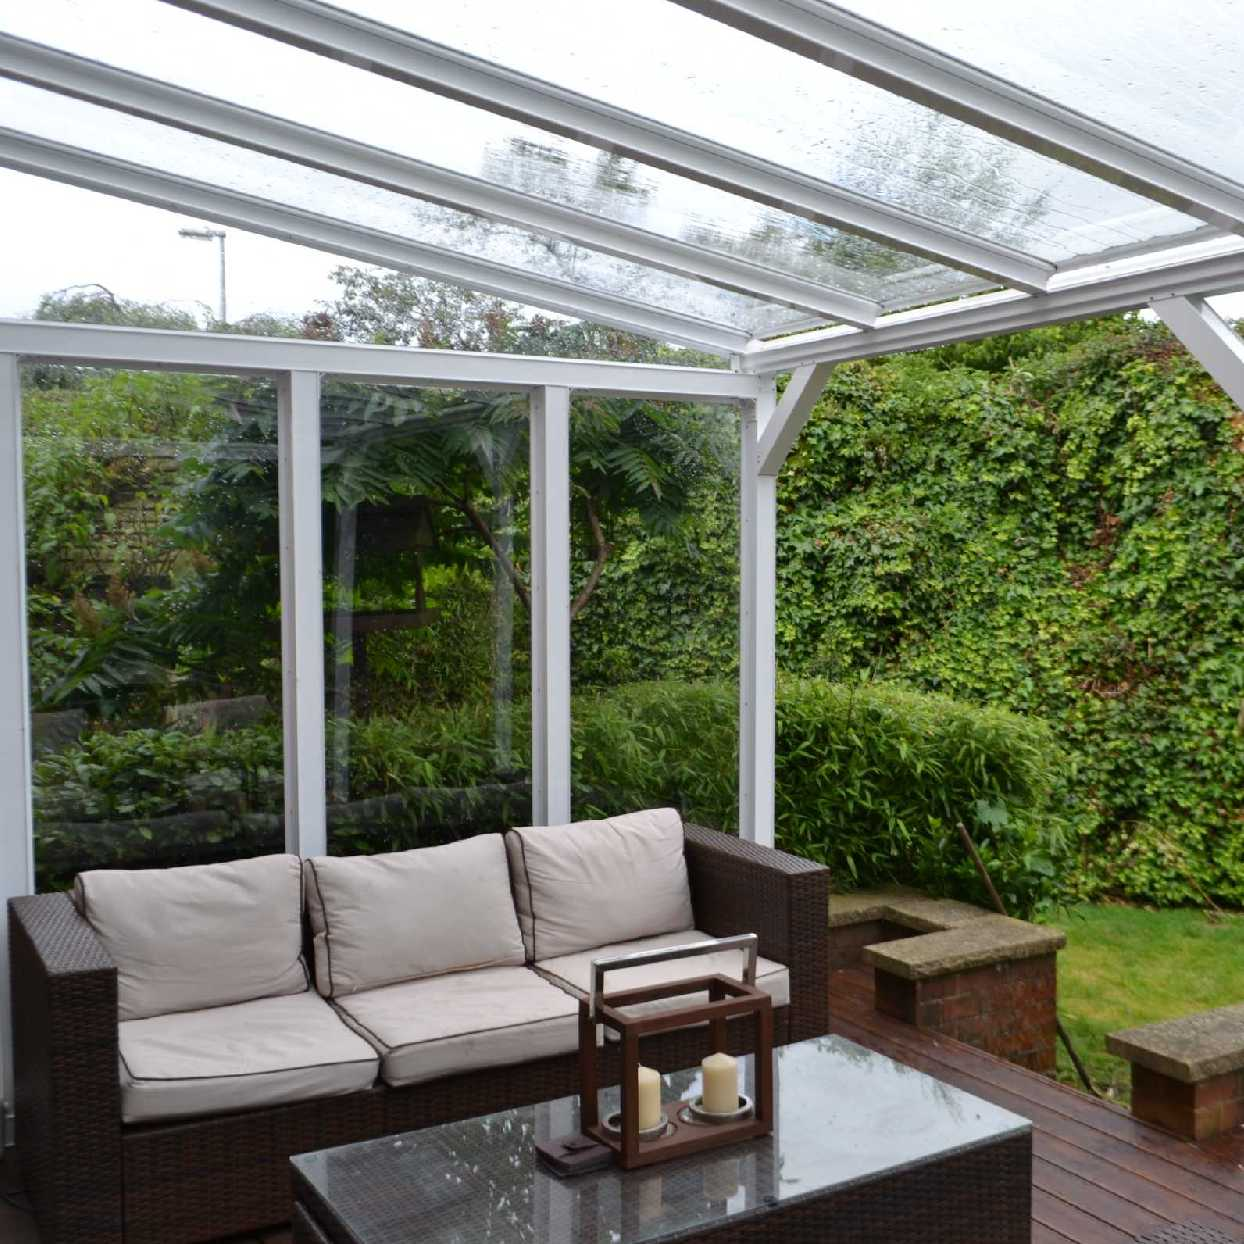 Omega Smart Lean-To Canopy with 6mm Glass Clear Plate Polycarbonate Glazing - 3.5m (W) x 3.5m (P), (3) Supporting Posts